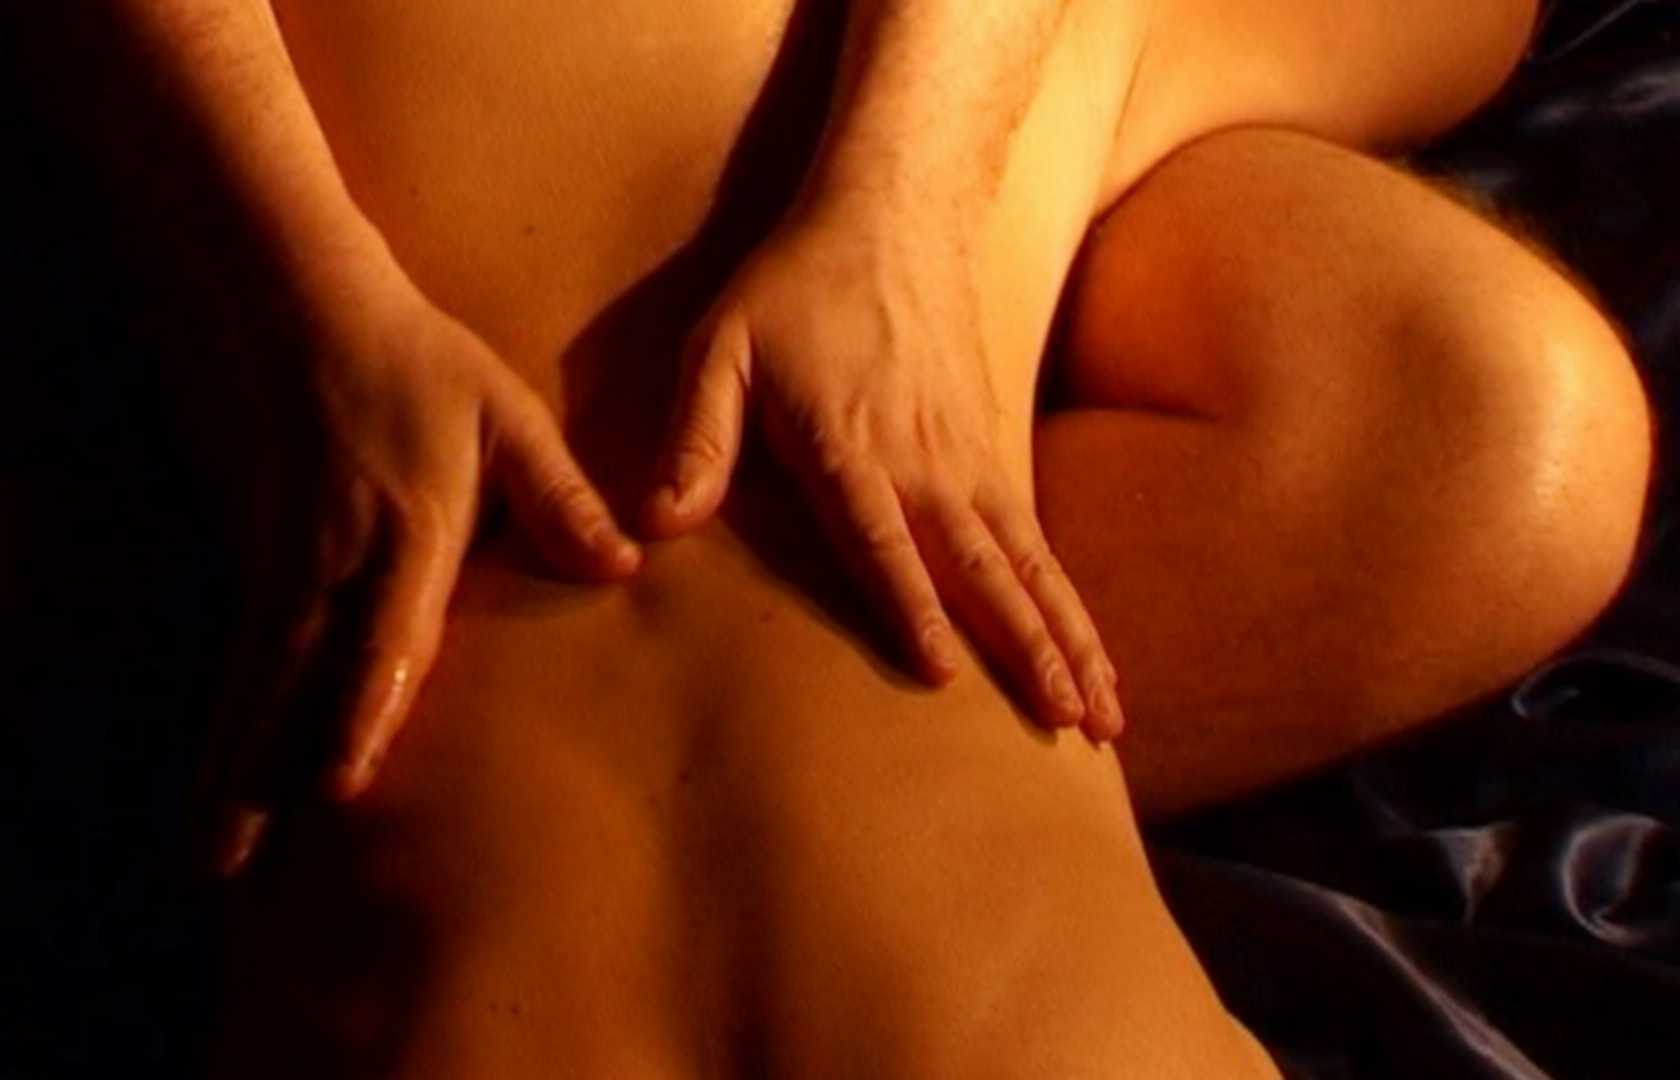 gay yoni massage kurs escort massage sønderjylland